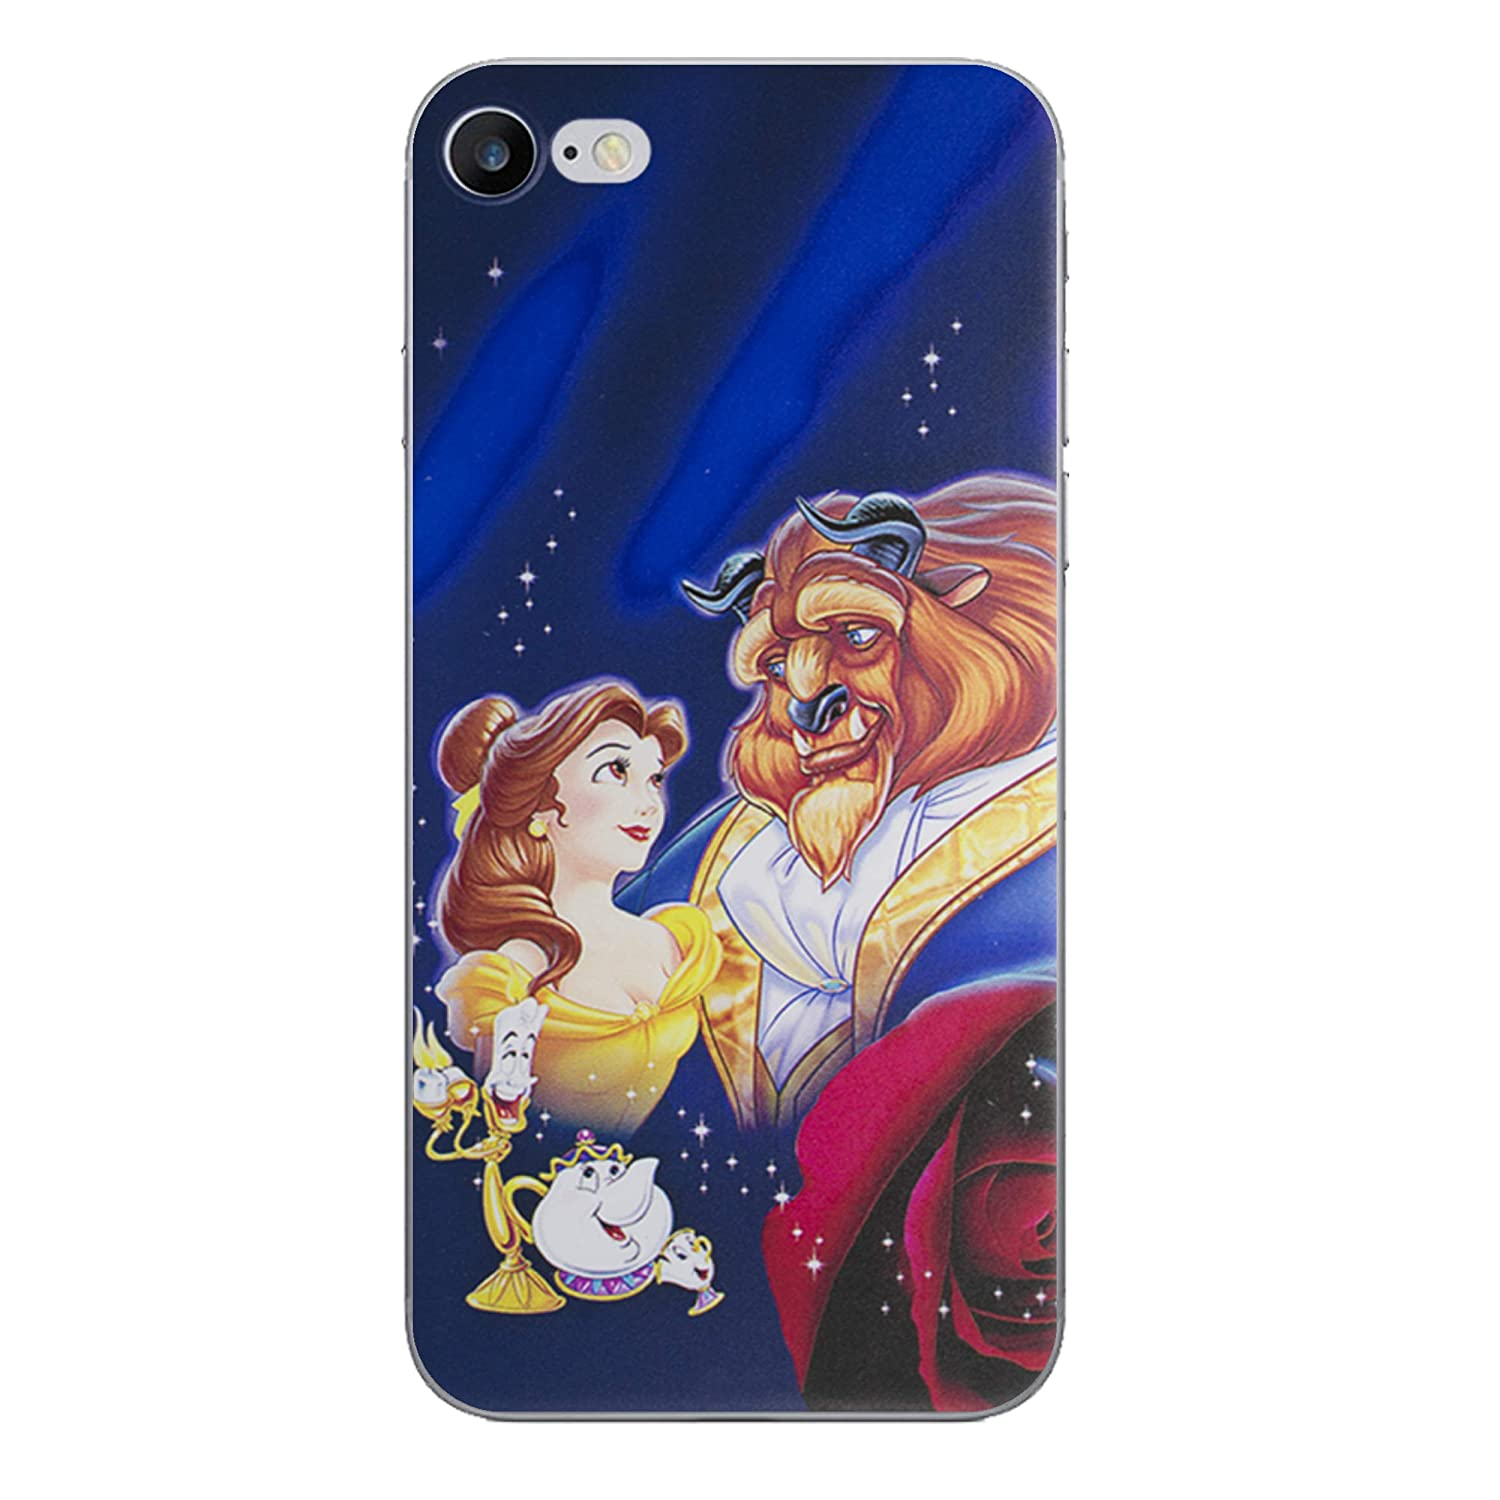 iphone 8 beauty and the beast phone case